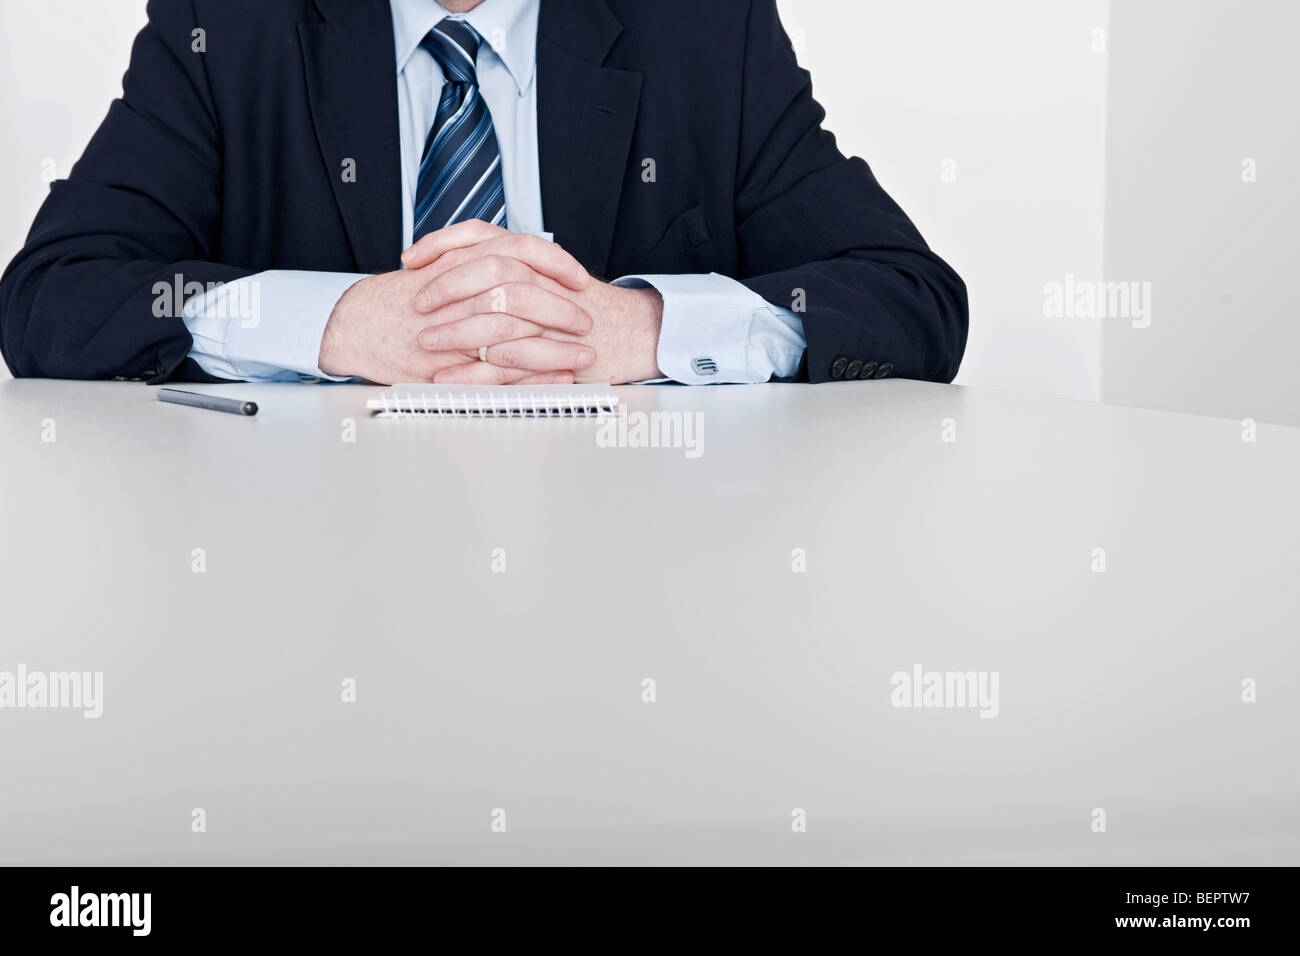 man sitting, hands clasped - Stock Image